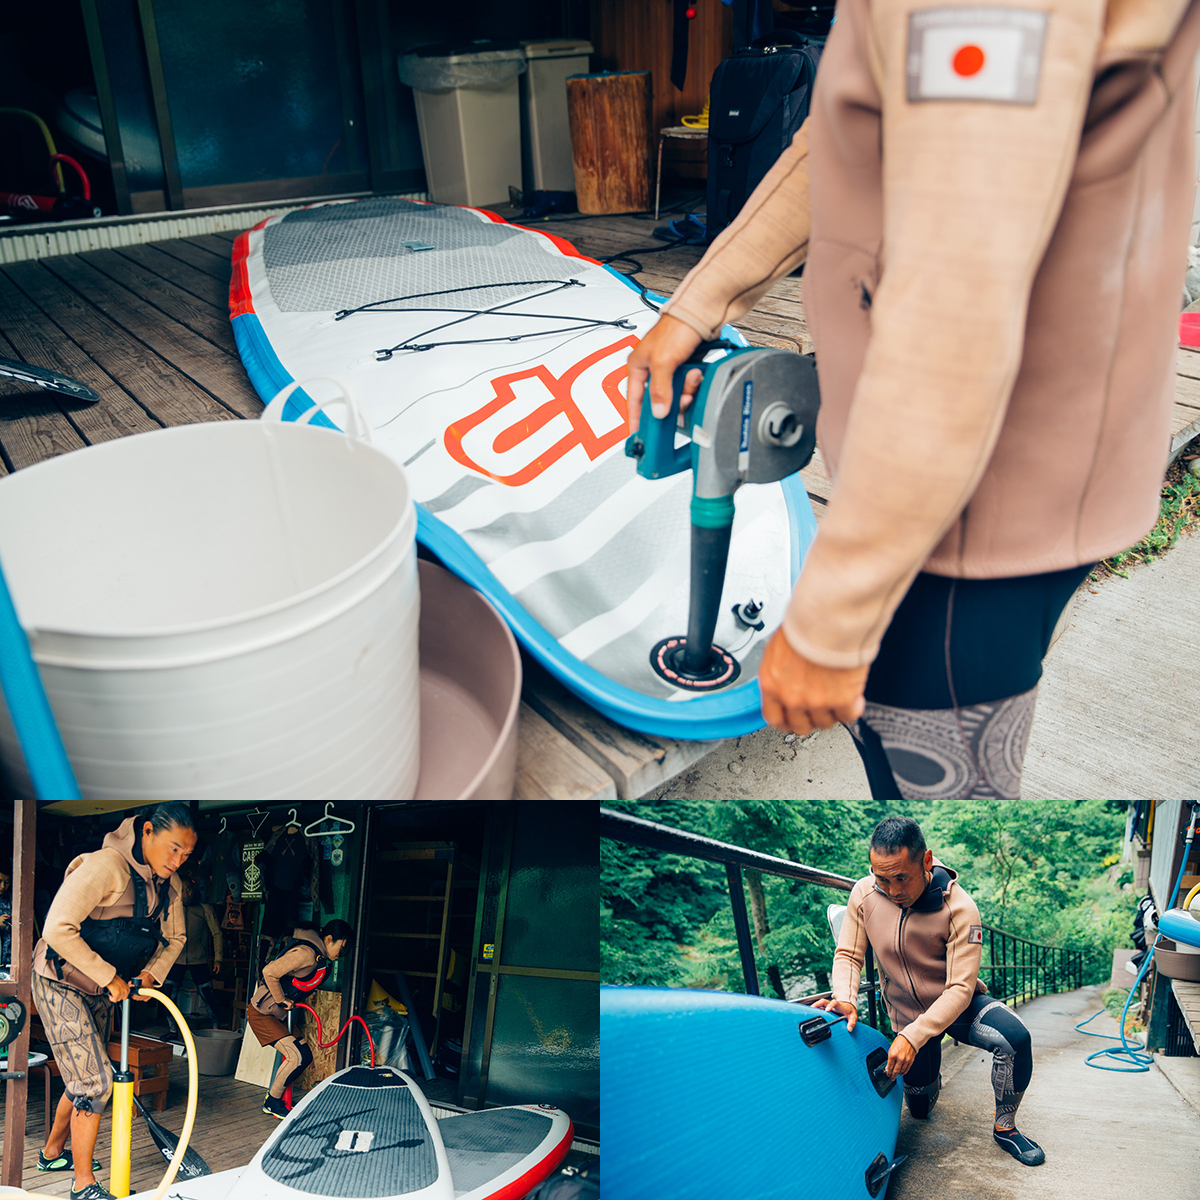 MG_4659 Jeep®がサポートする River SUP Team JAPAN が今年も集結!<Gopro Mountain Games>参戦直前のトレーニングに密着。